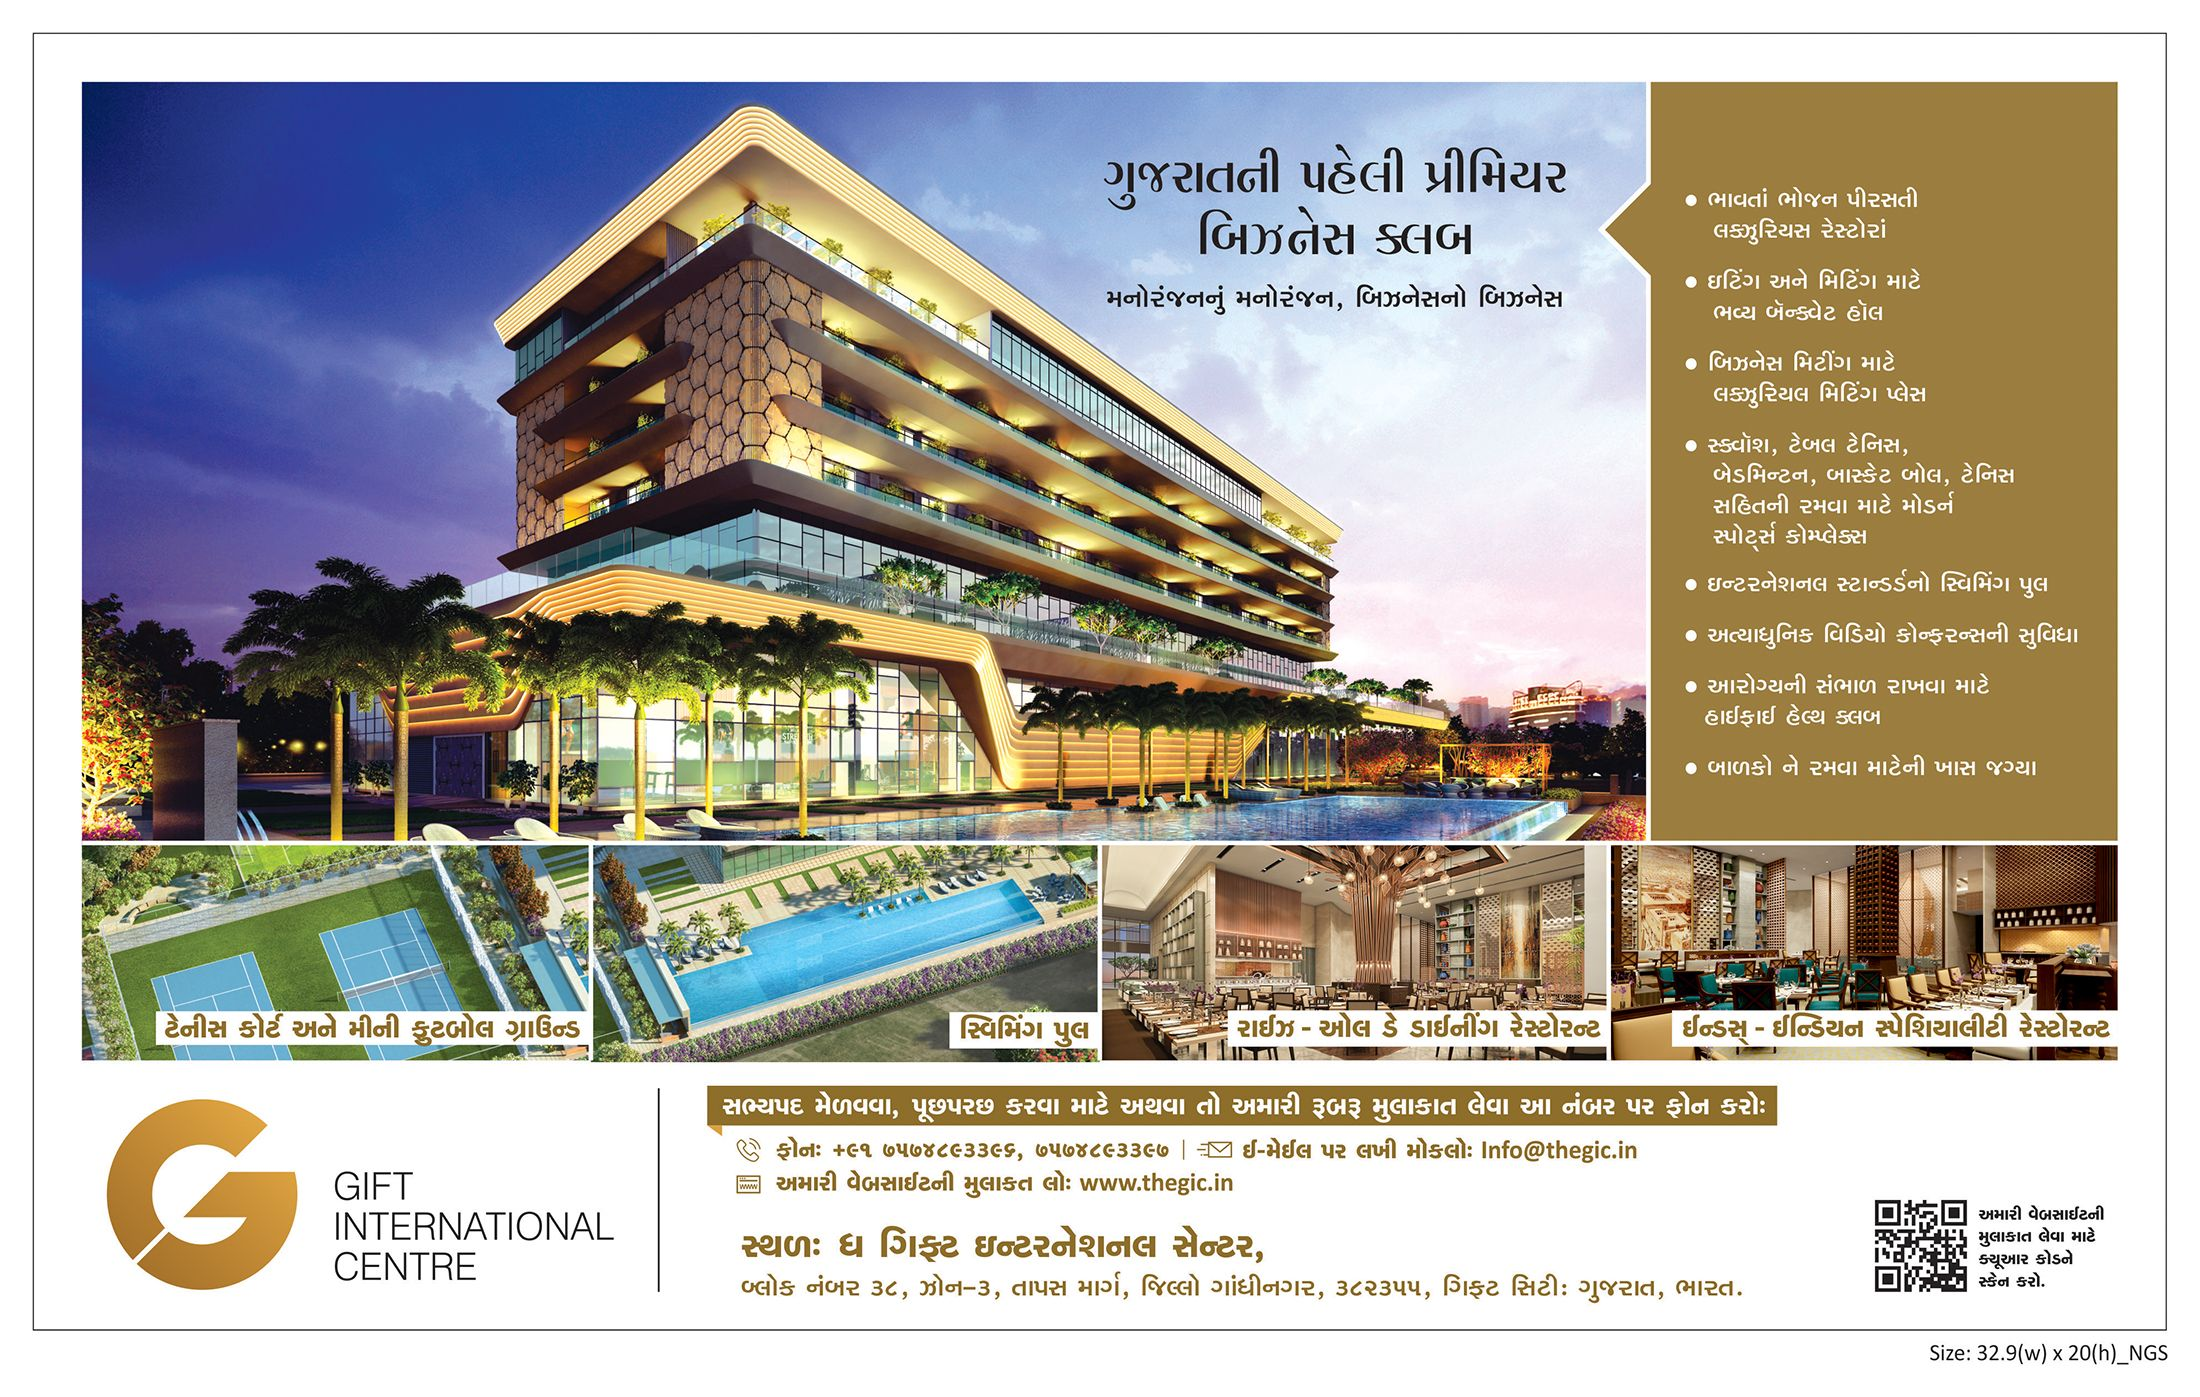 Gift International Center on Nav Gujarat Samay Gandhinagar Gujarat